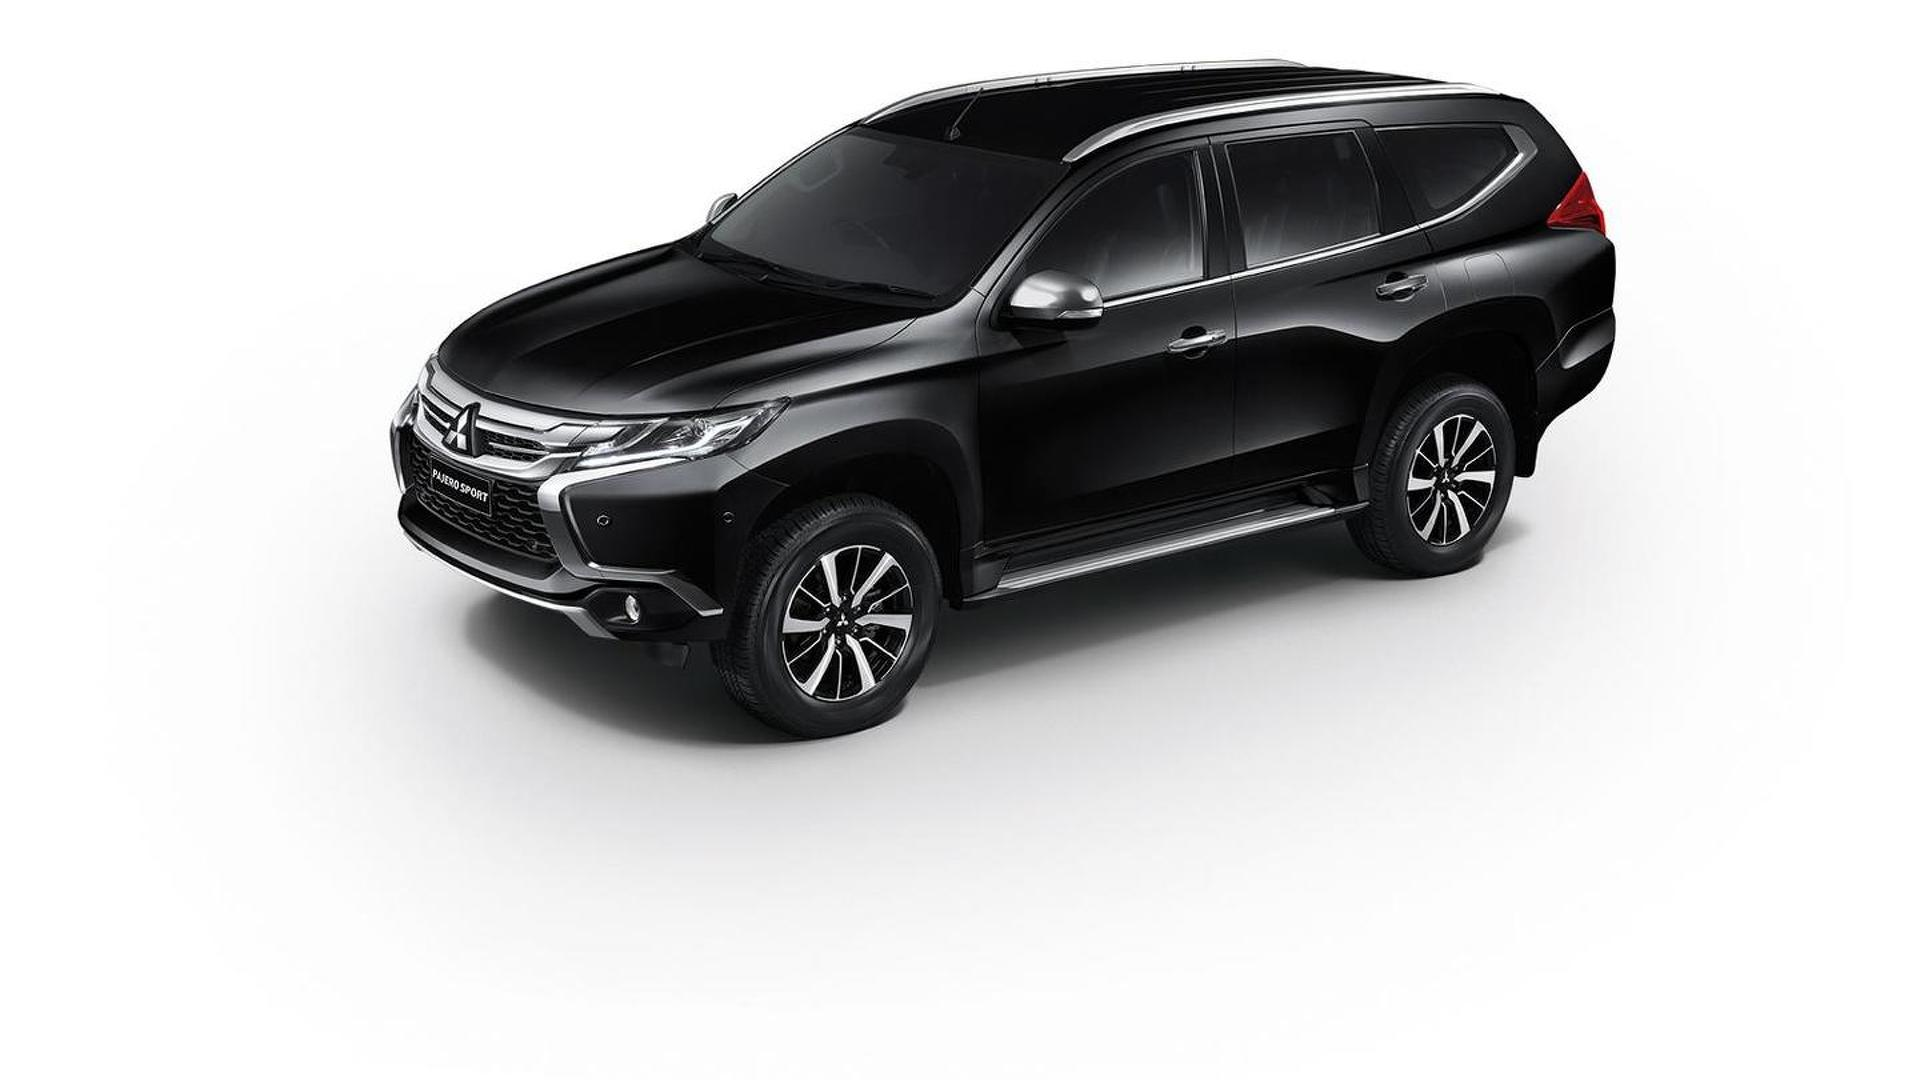 eclipse be name rumored update to named mitsubishi not suv unconfirmed will asx news autoevolution